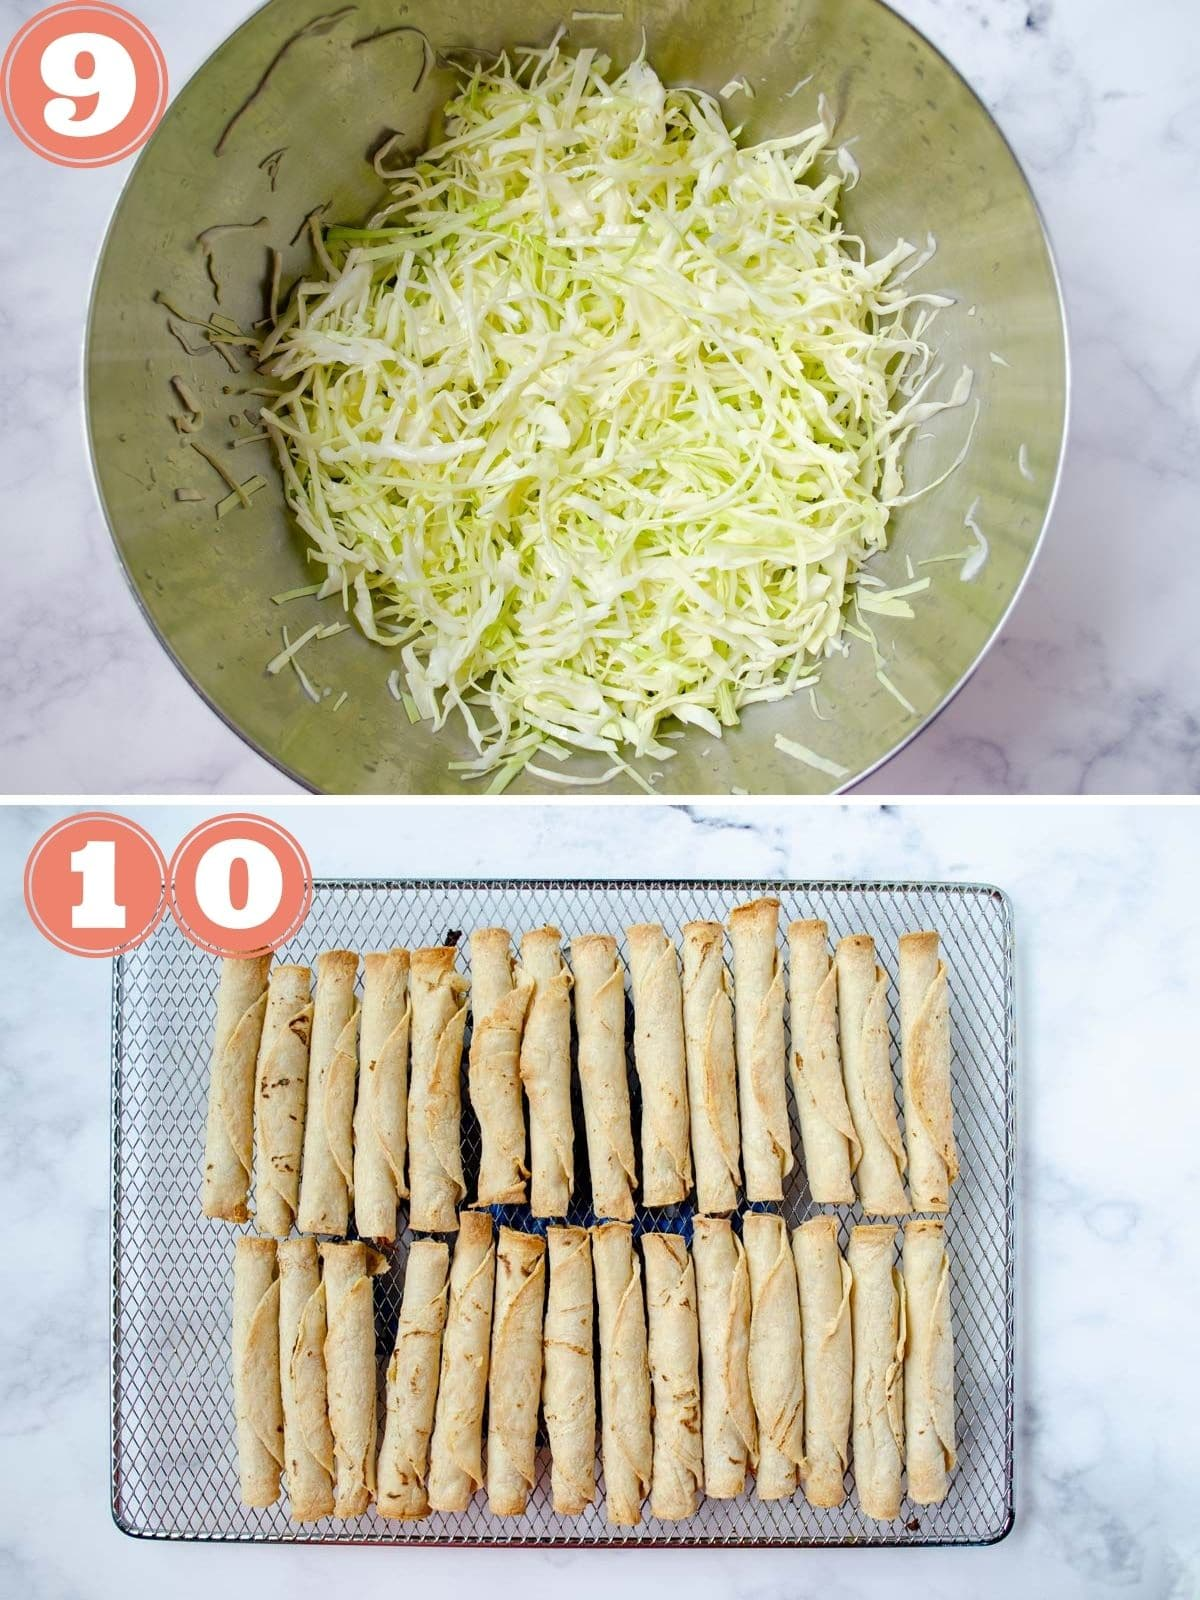 from top to bottom, a big bowl of cabbage, a rack with the cooked tacos